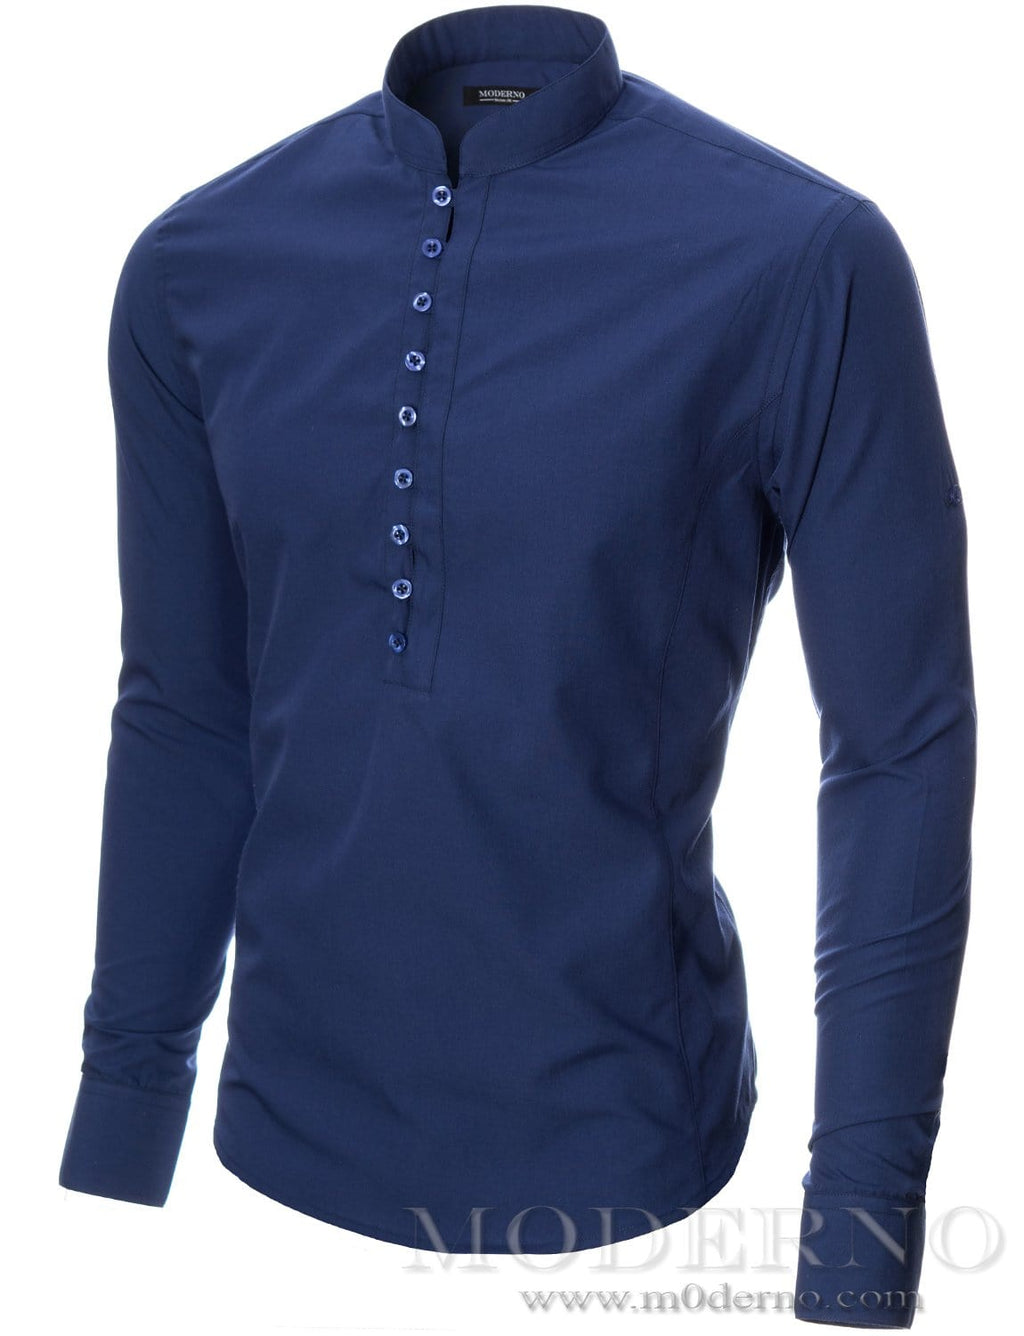 Mens button-down shirt blue (MOD1431LS) - MODERNO